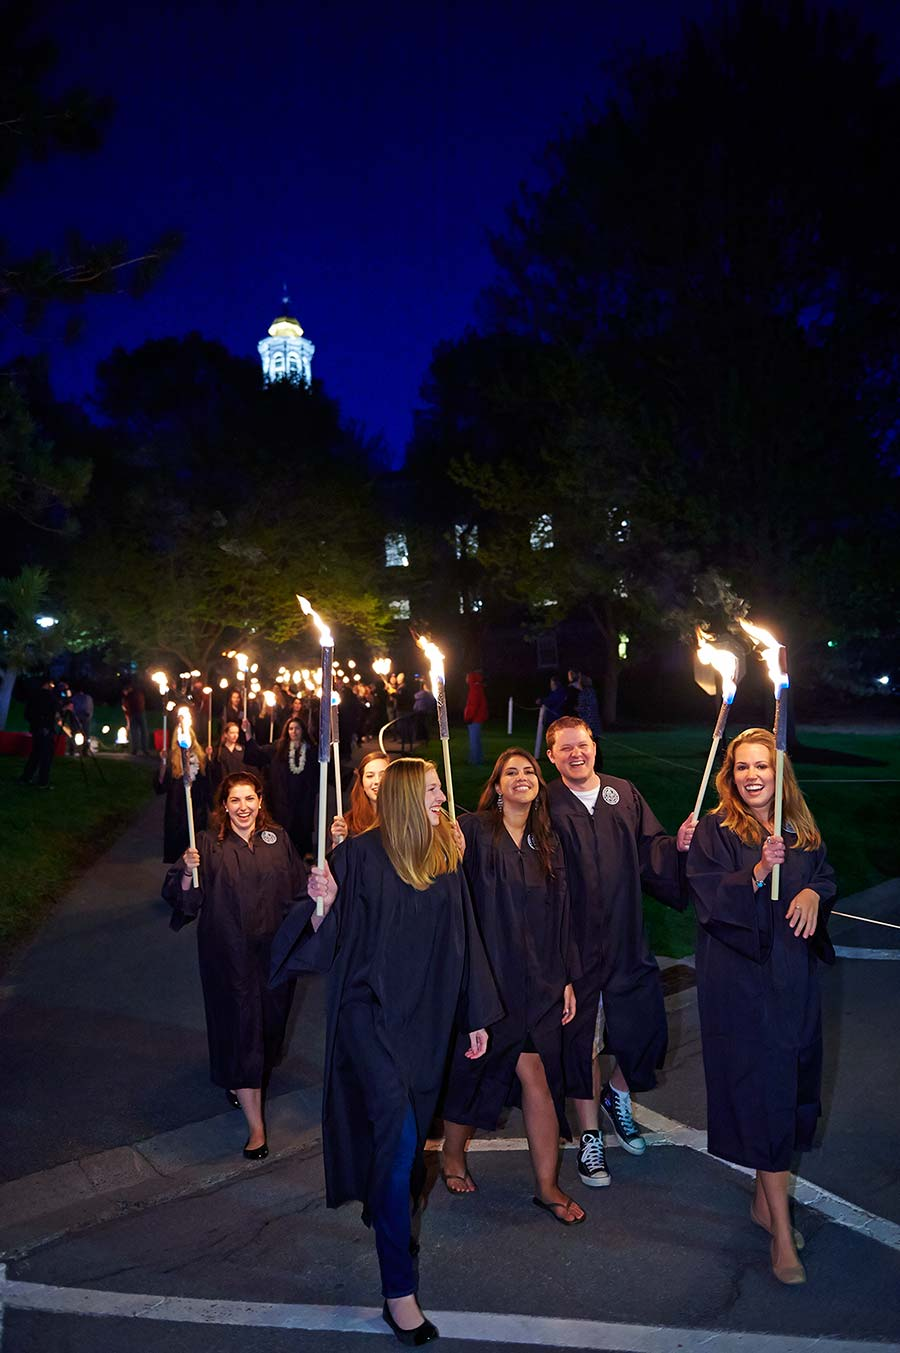 Graduating seniors walk down the hill during the torchlight processional